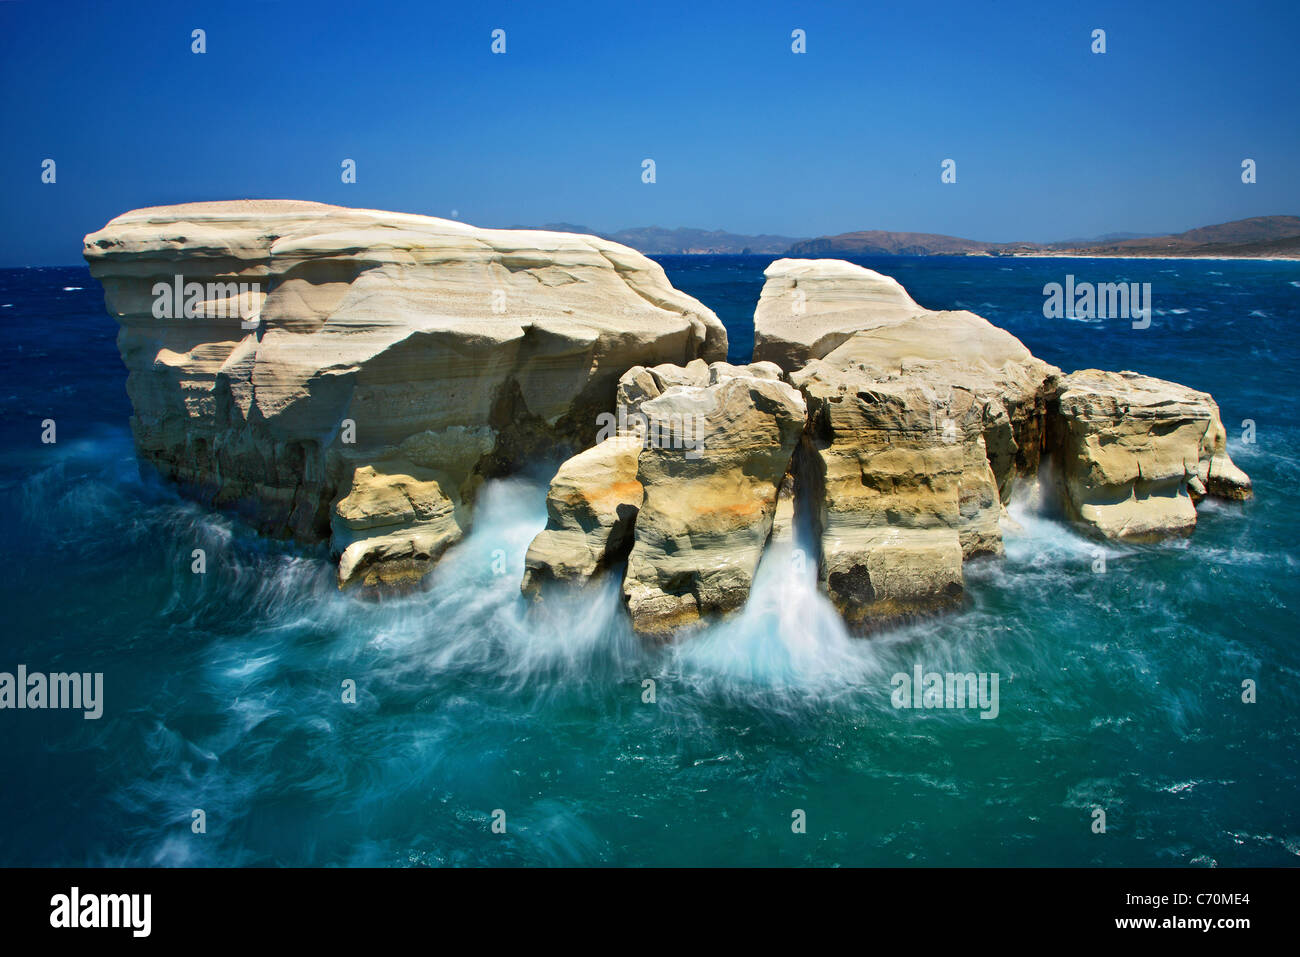 Long exposure shot of some rocks in Sarakiniko beach, just to give the impression of the 'birth of an island'. - Stock Image